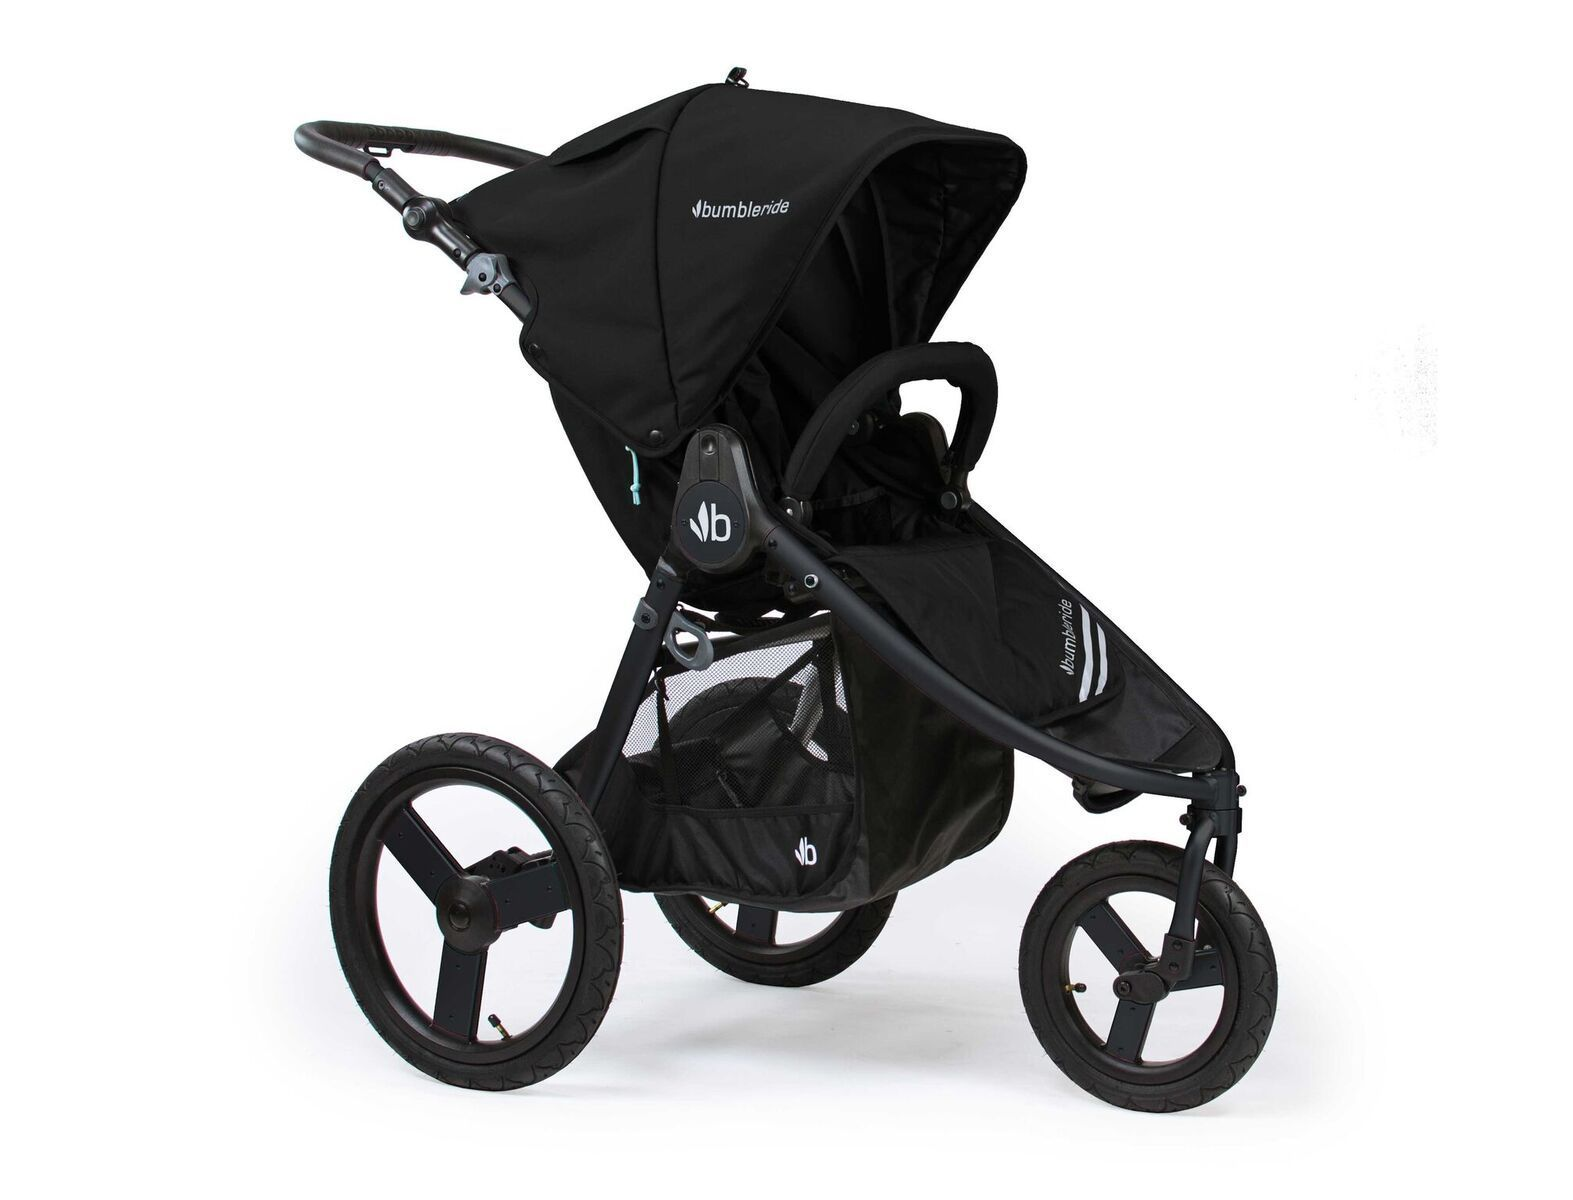 Bumbleride Speed Jogging Stroller Twin strollers